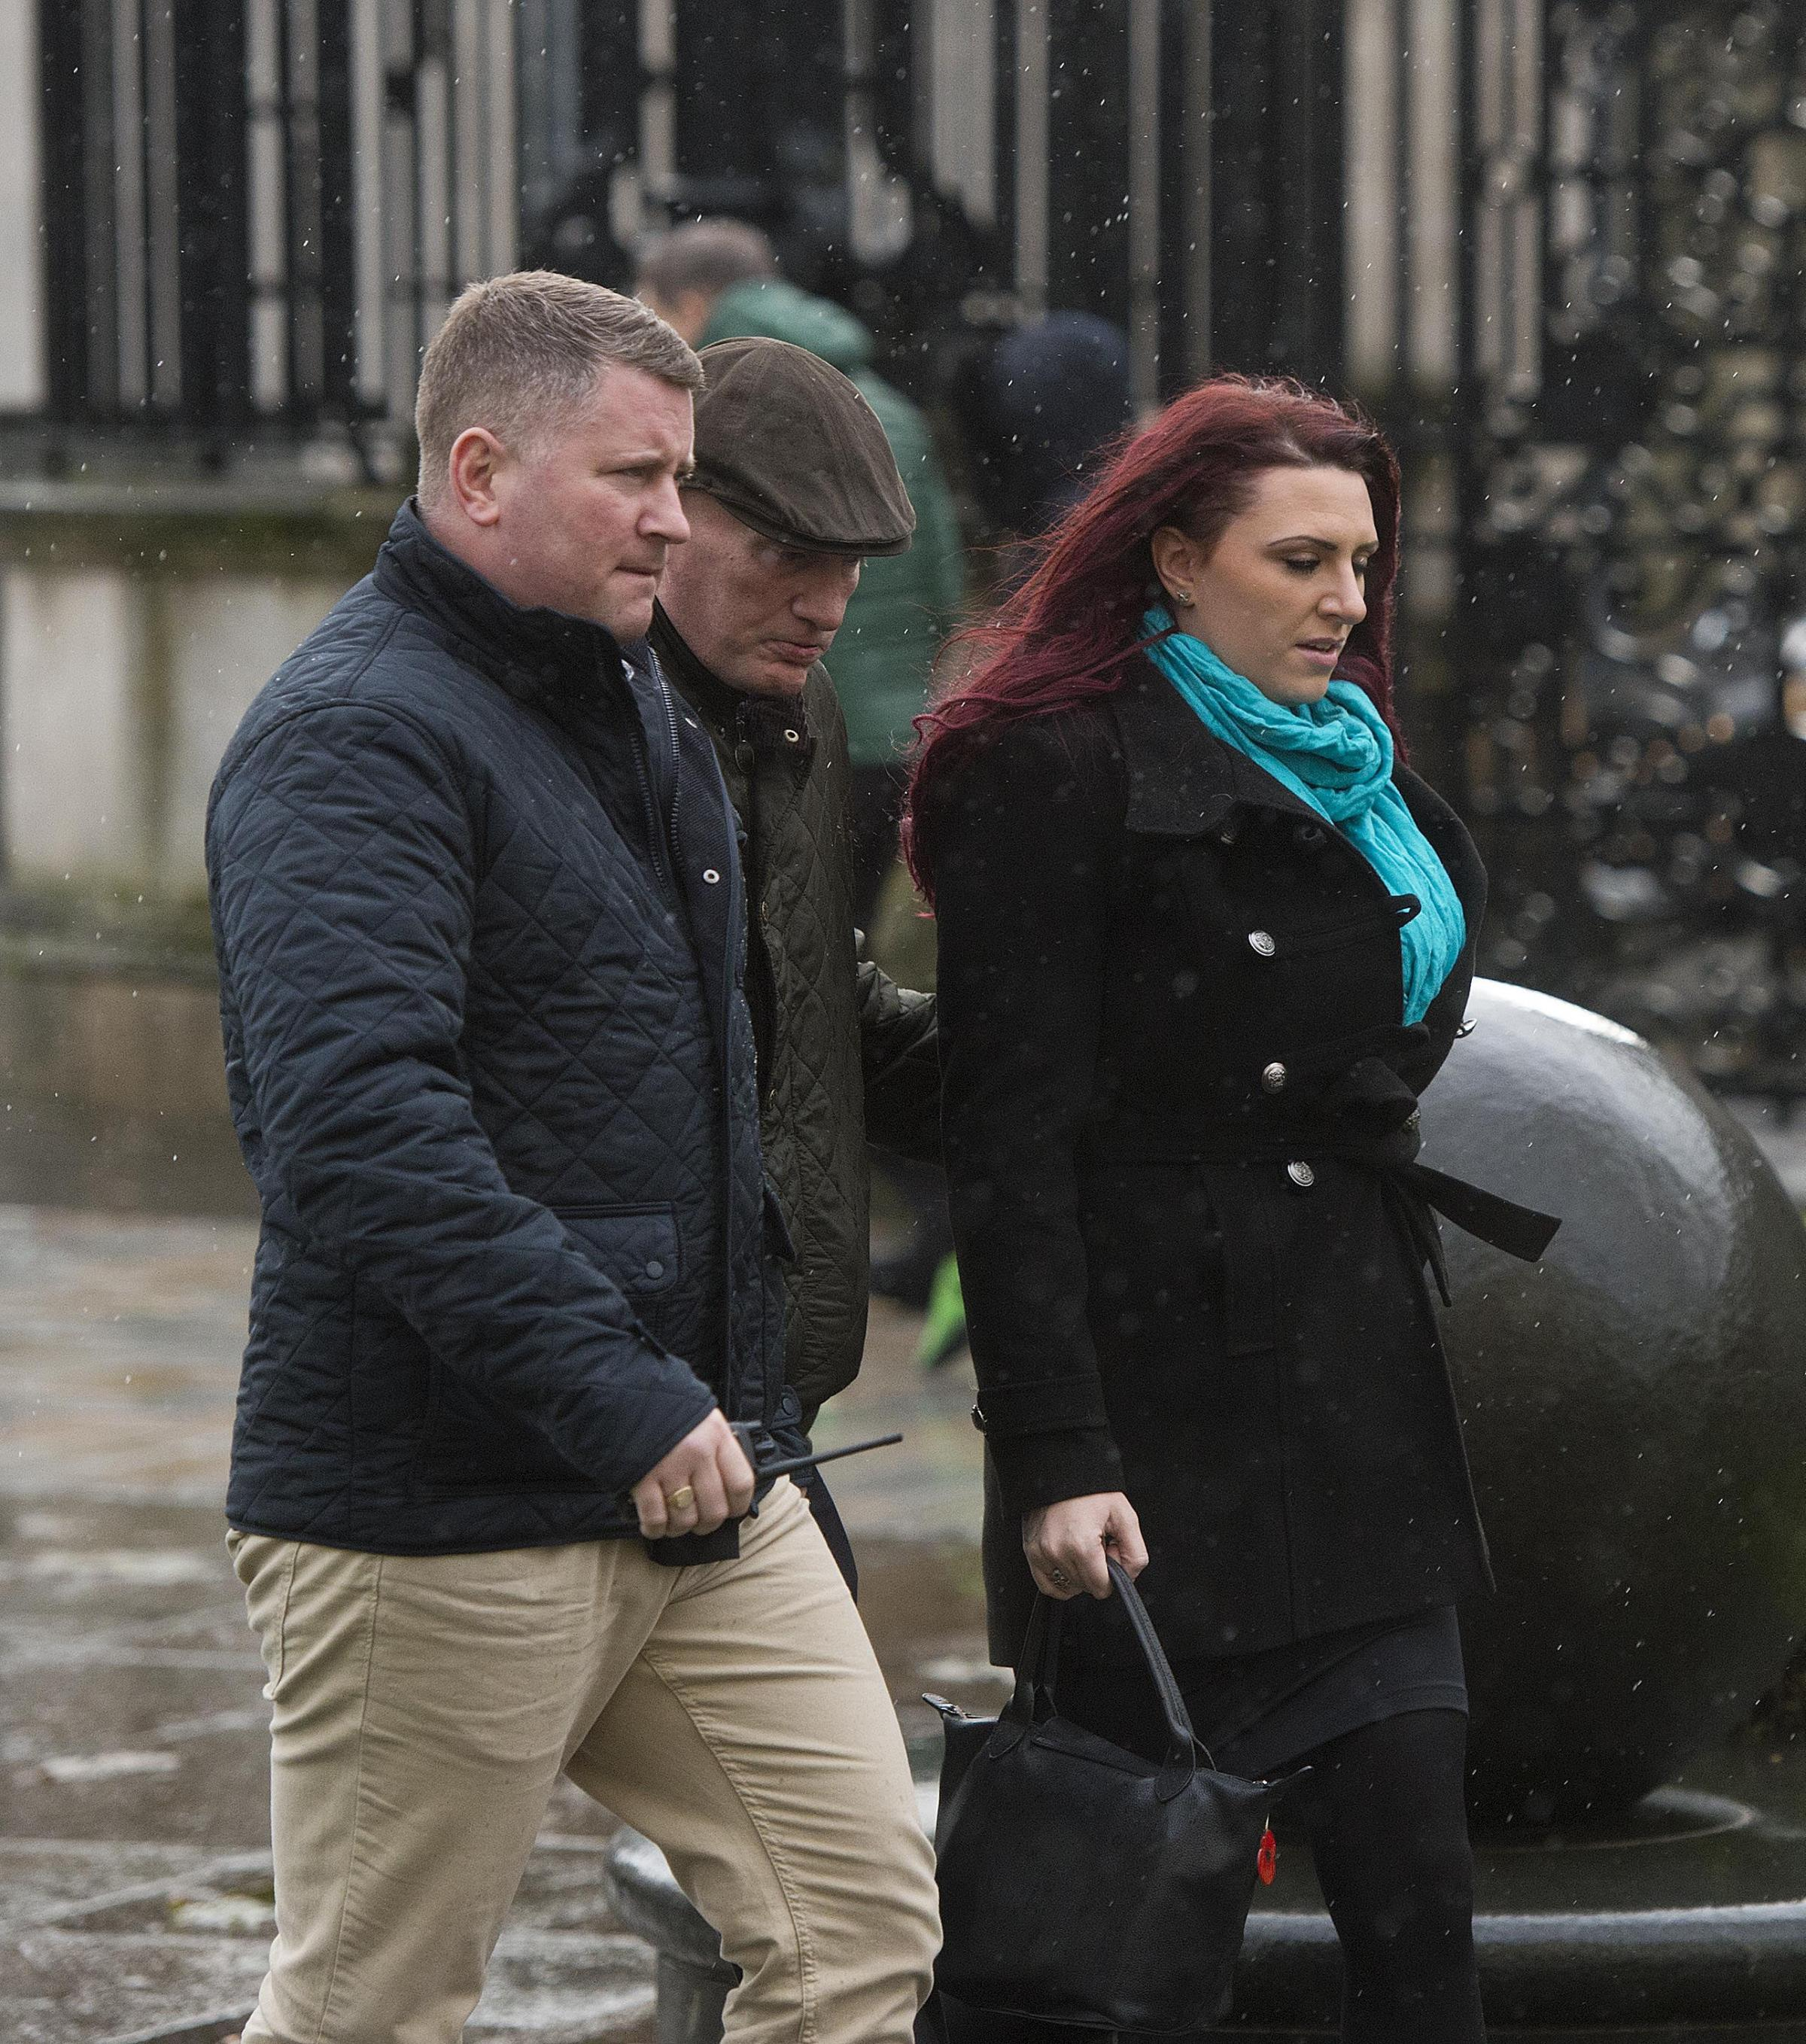 Britain First leaders have been suspended by Twitter